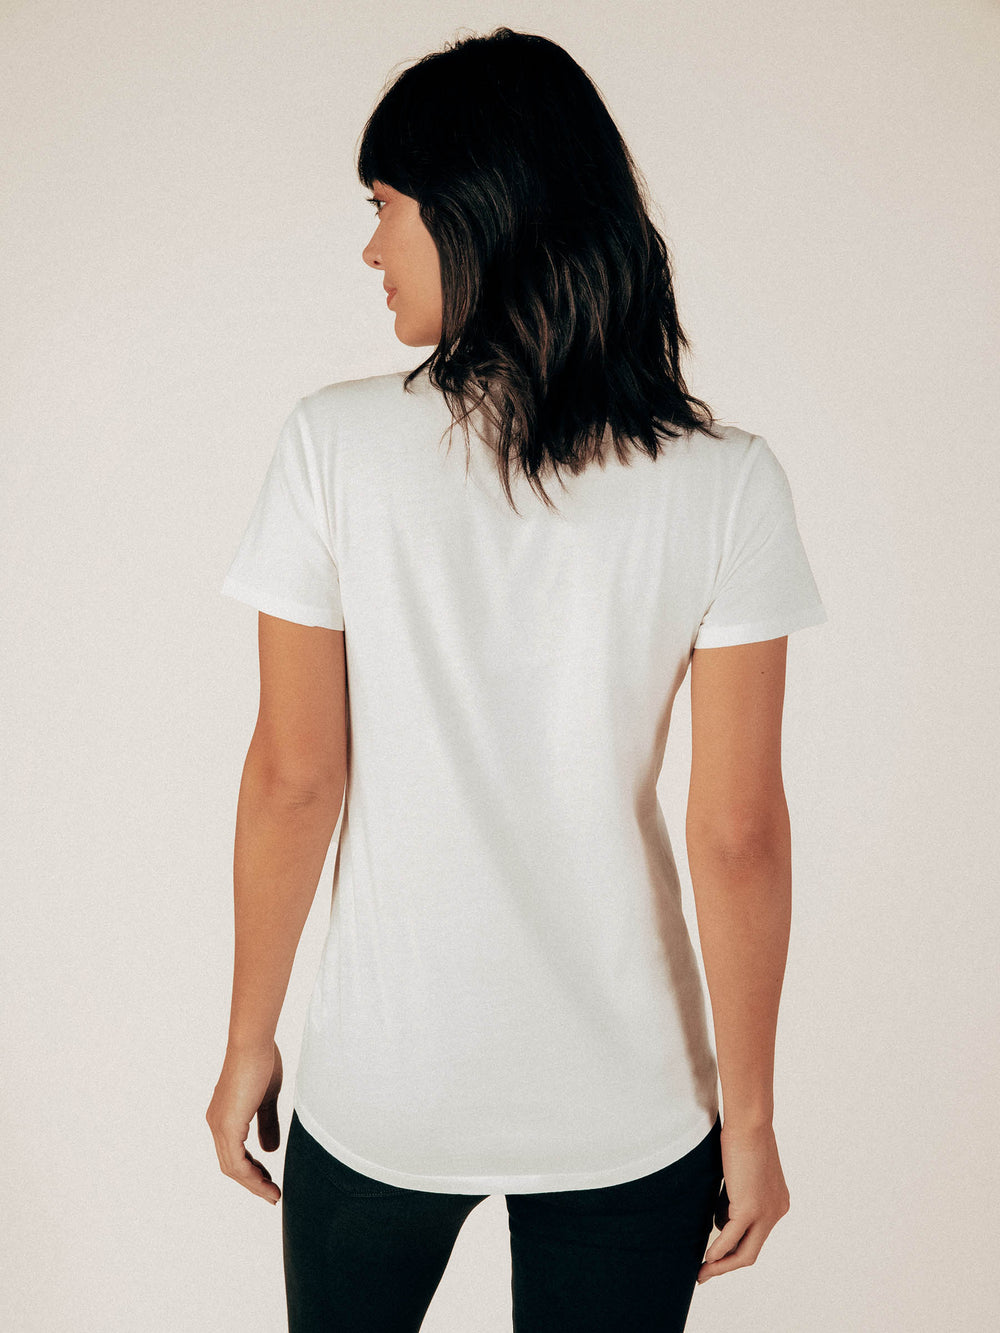 Creamy White Crew Neck Curved Hem Tee - Graceful District